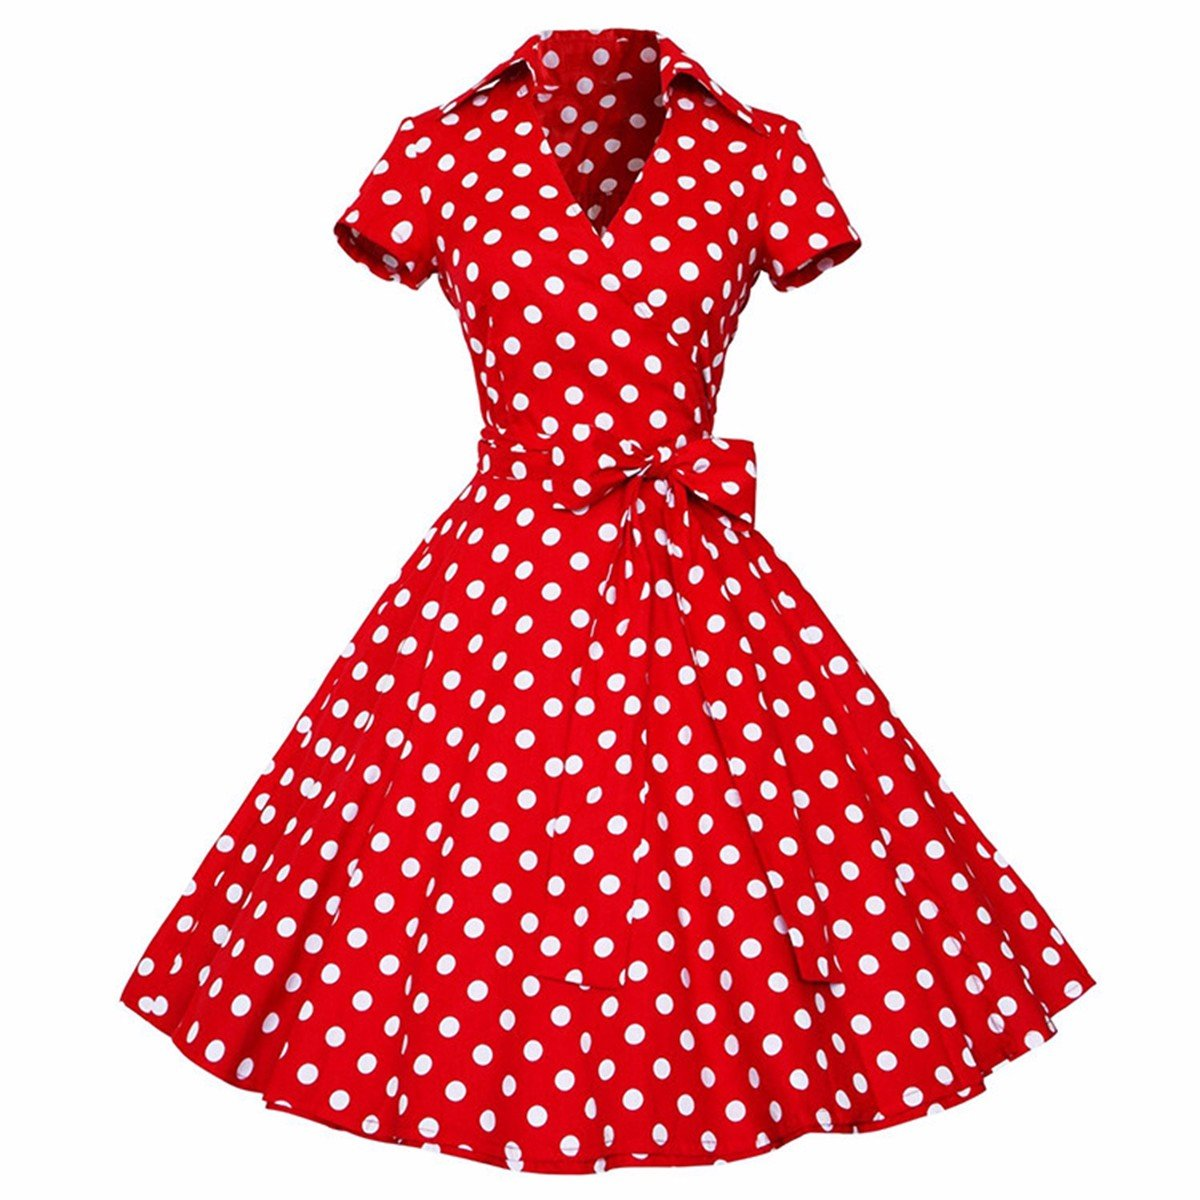 Samtree Womens 50s Style Polka Dot Short Sleeves Rockabilly Vintage Tea Dress 0